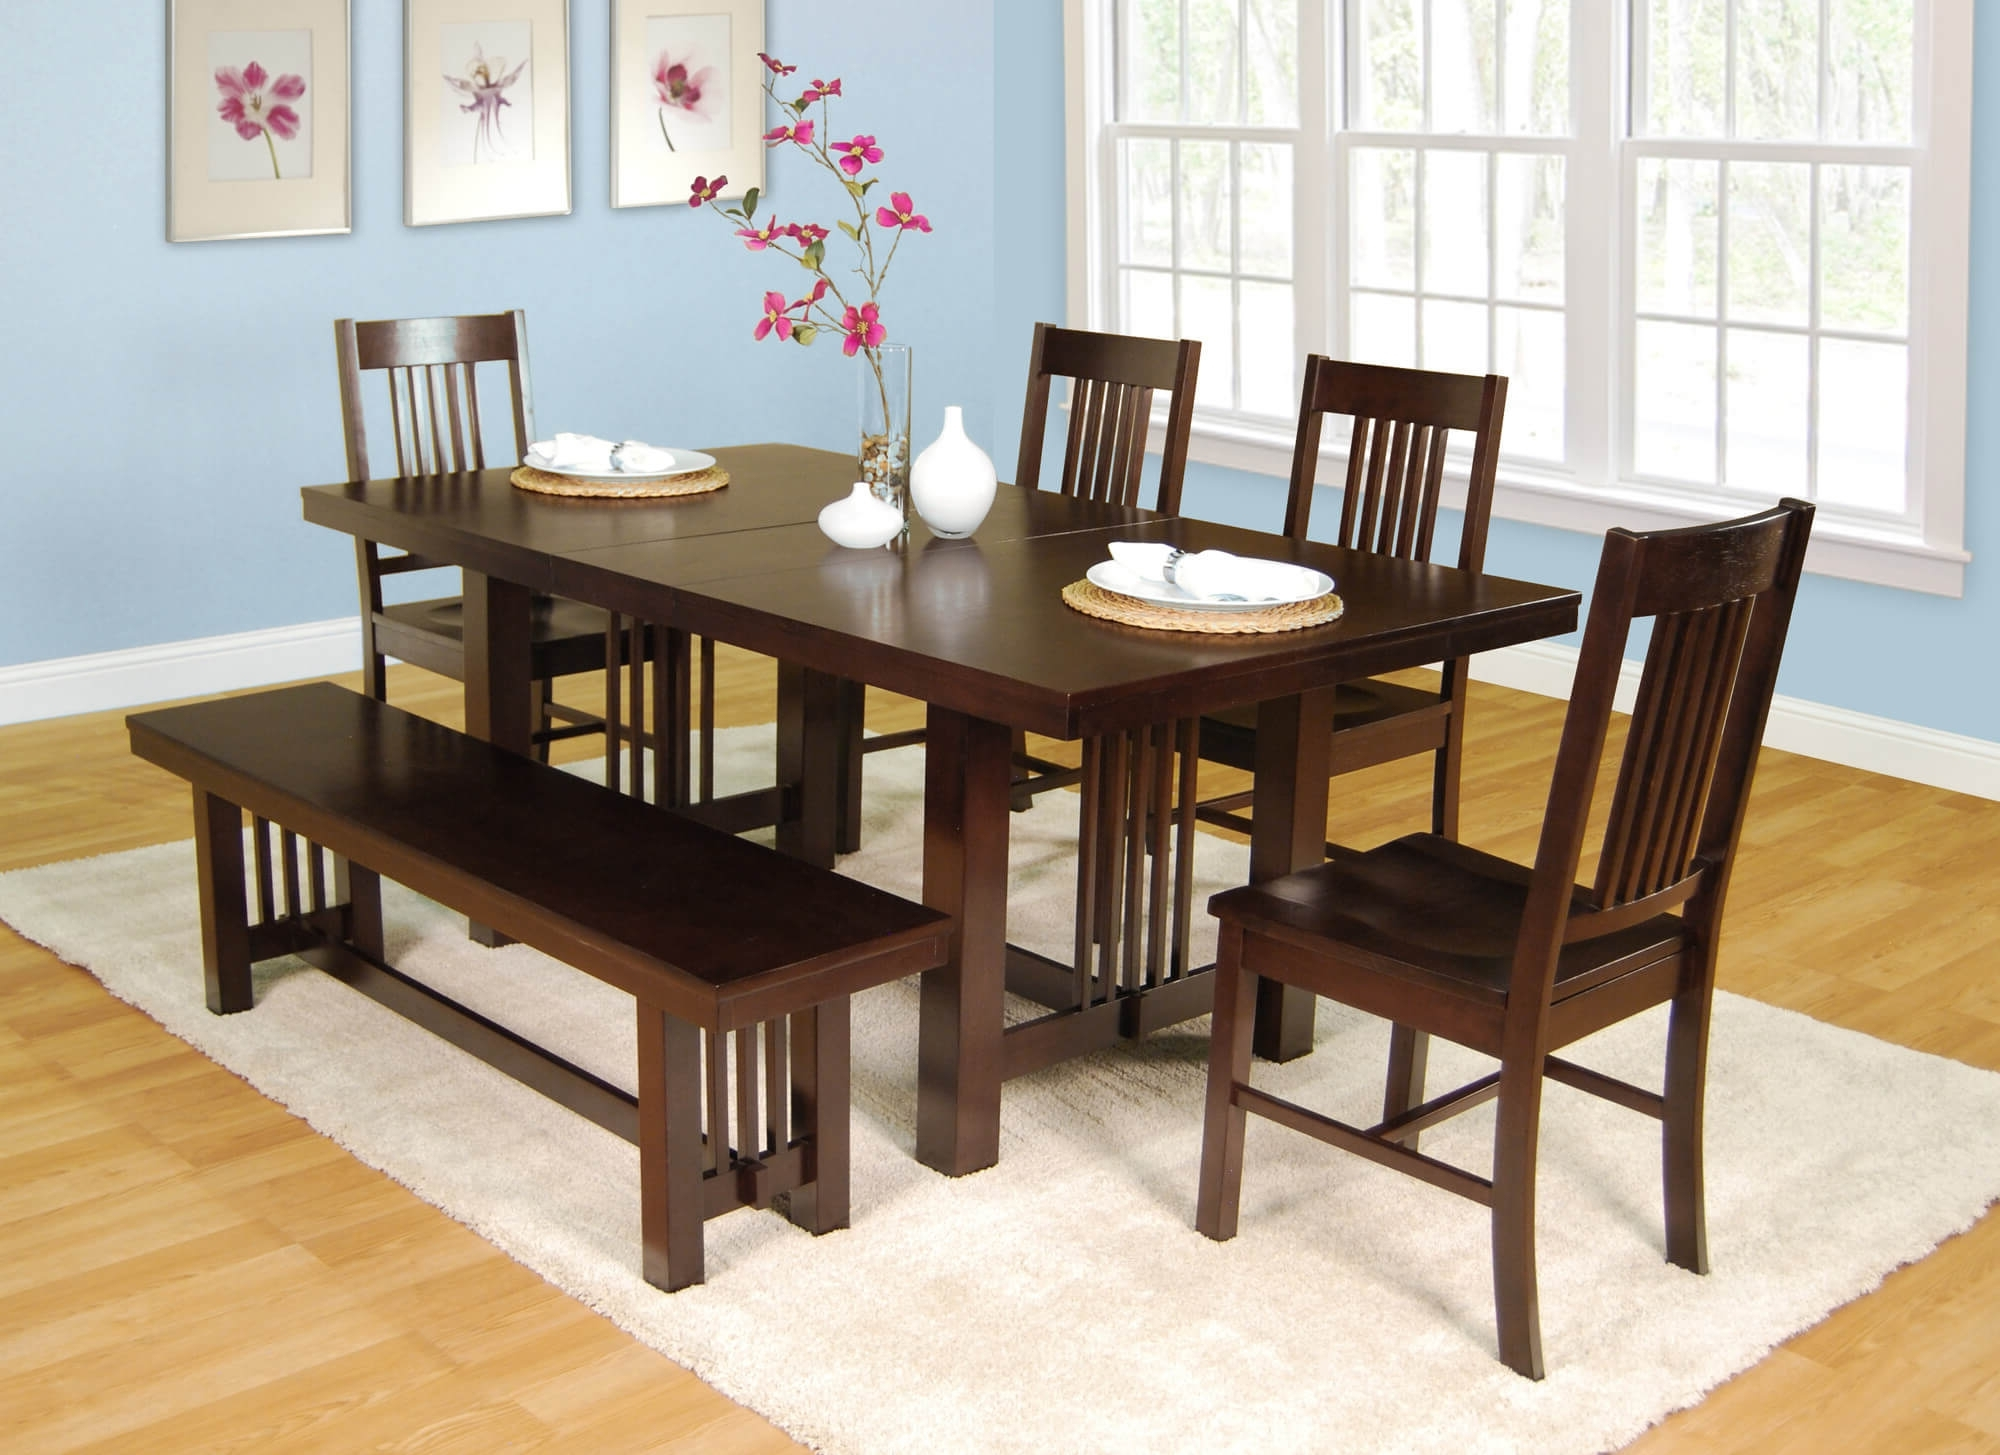 Most Current Craftsman 5 Piece Round Dining Sets With Side Chairs Throughout 26 Dining Room Sets (Big And Small) With Bench Seating (2018) (View 24 of 25)